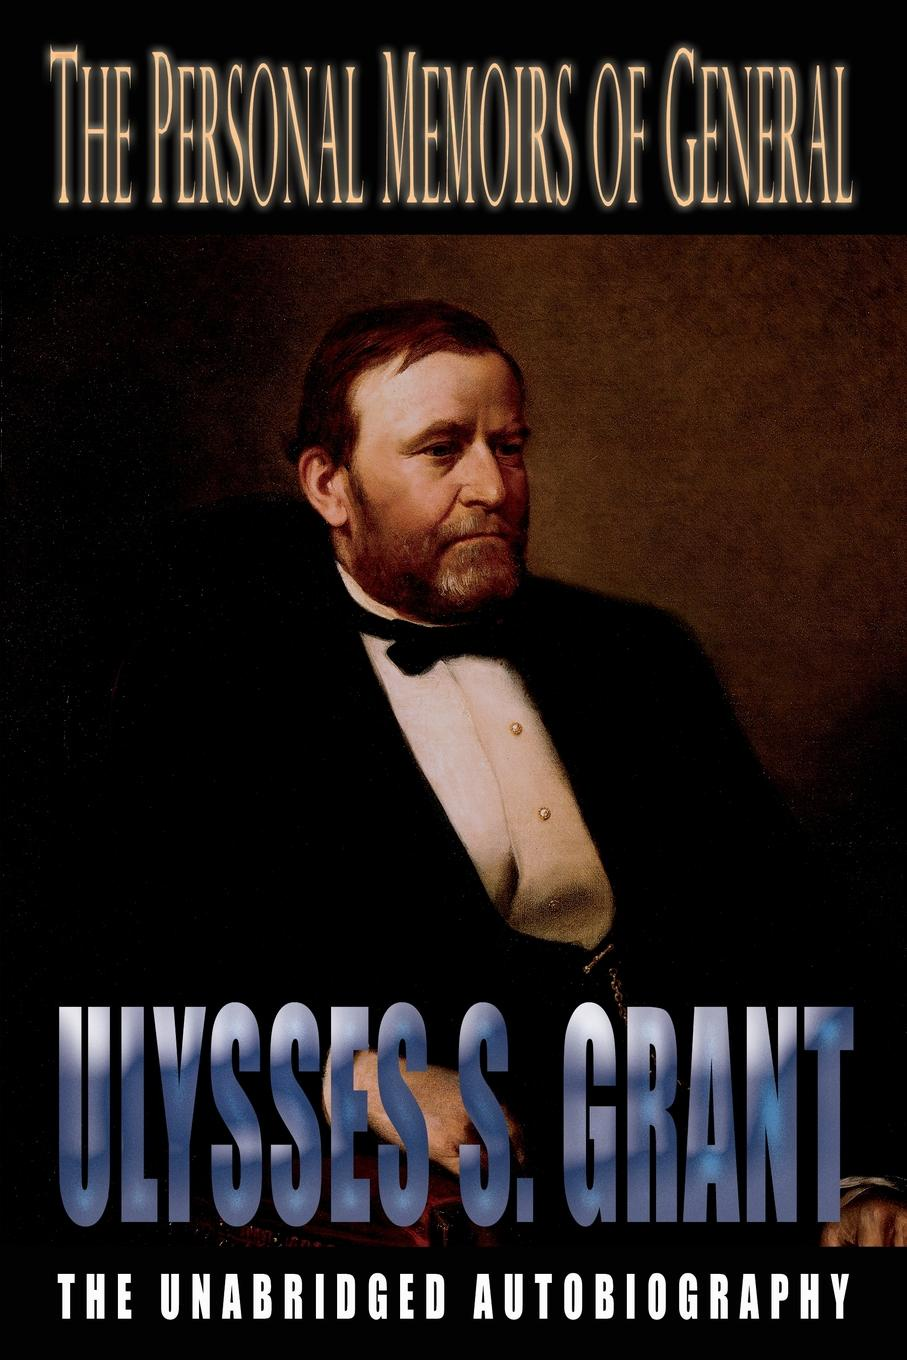 Ulysses S Grant The Personal Memoirs of General Ulysses S. Grant grant tavinor the art of videogames